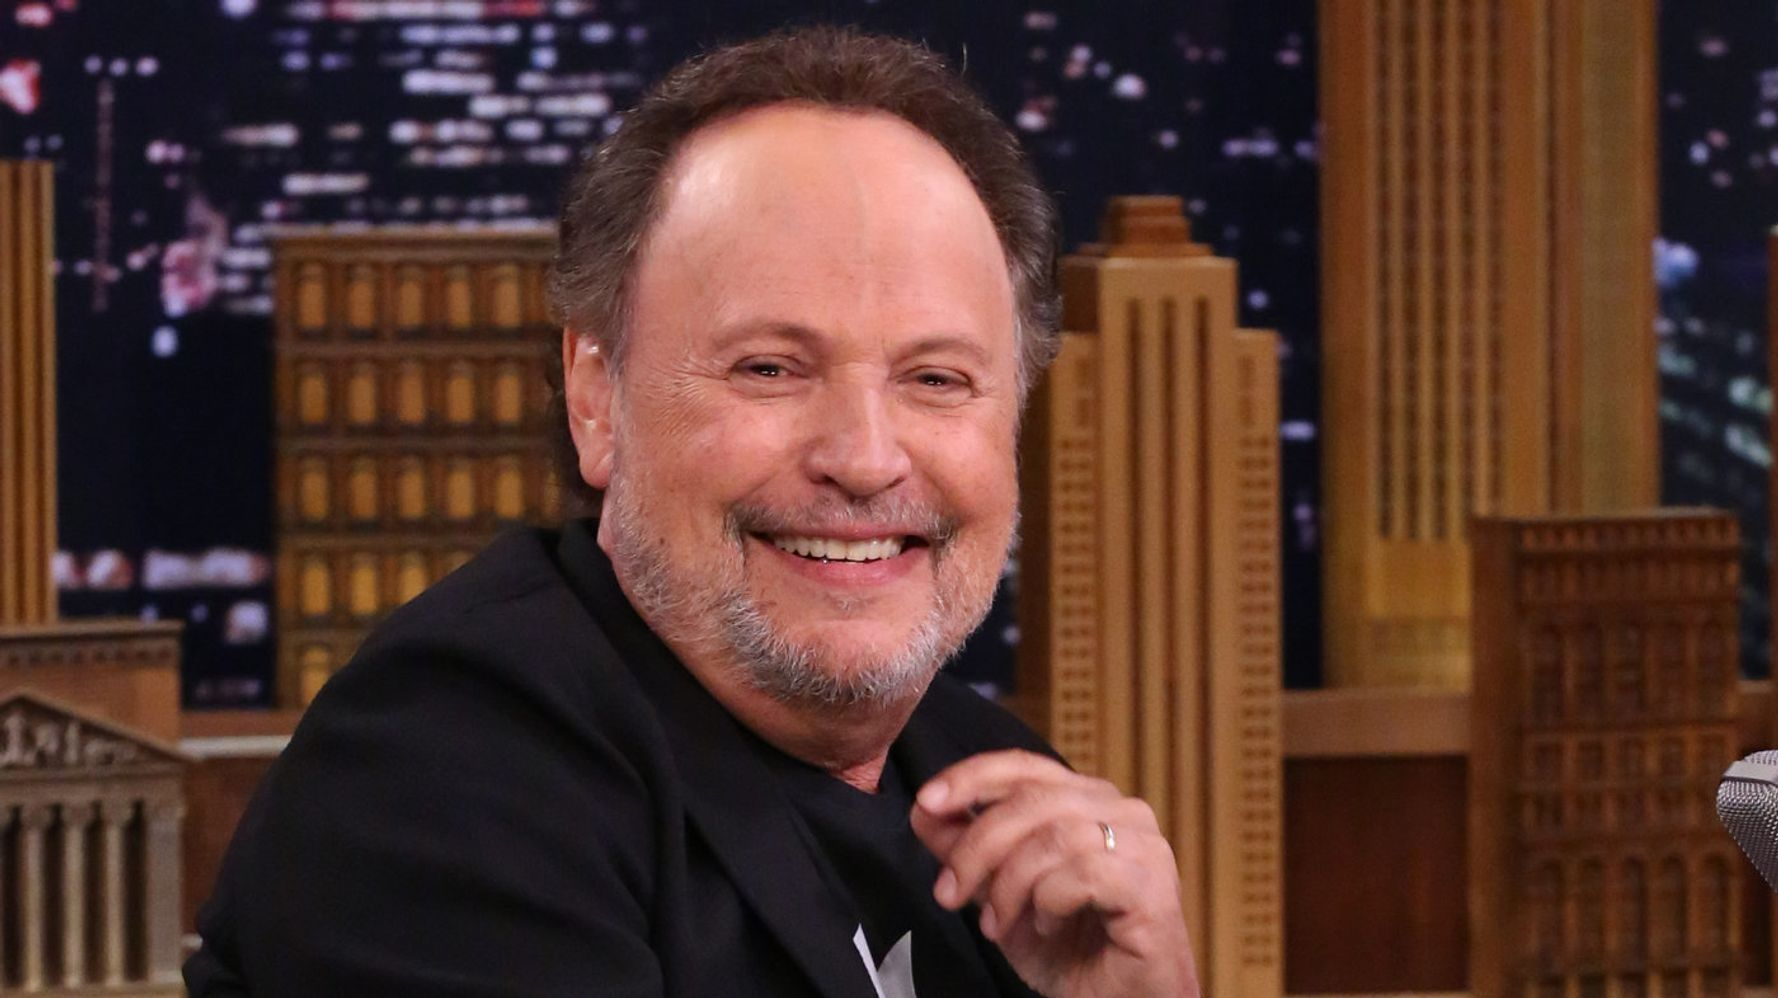 Billy Crystal Burns Trump Supporter With Trump's Own Words